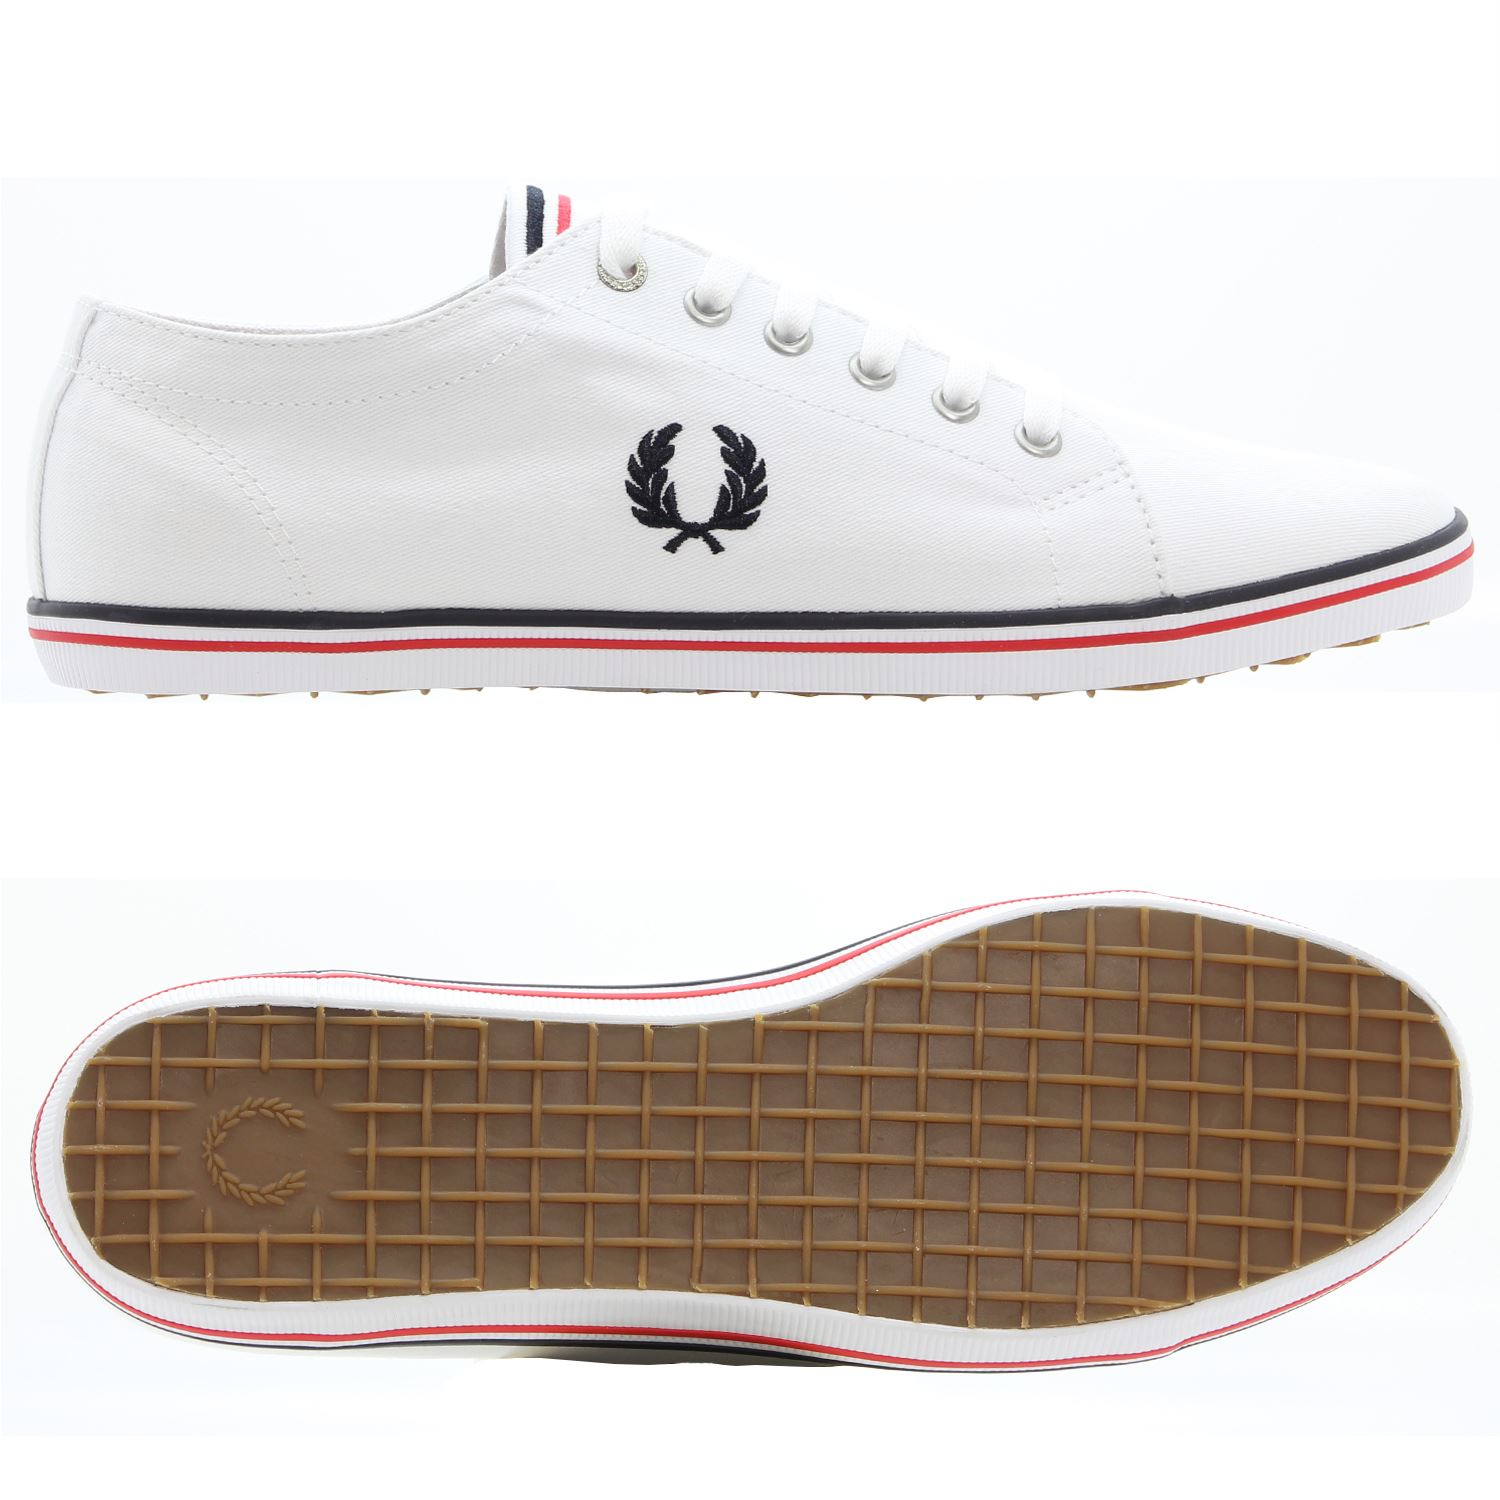 Details zu FRED PERRY KINGSTON TWILL SHOE WHITE RETRO TRAINER CANVAS SMART CASUAL SUMMER